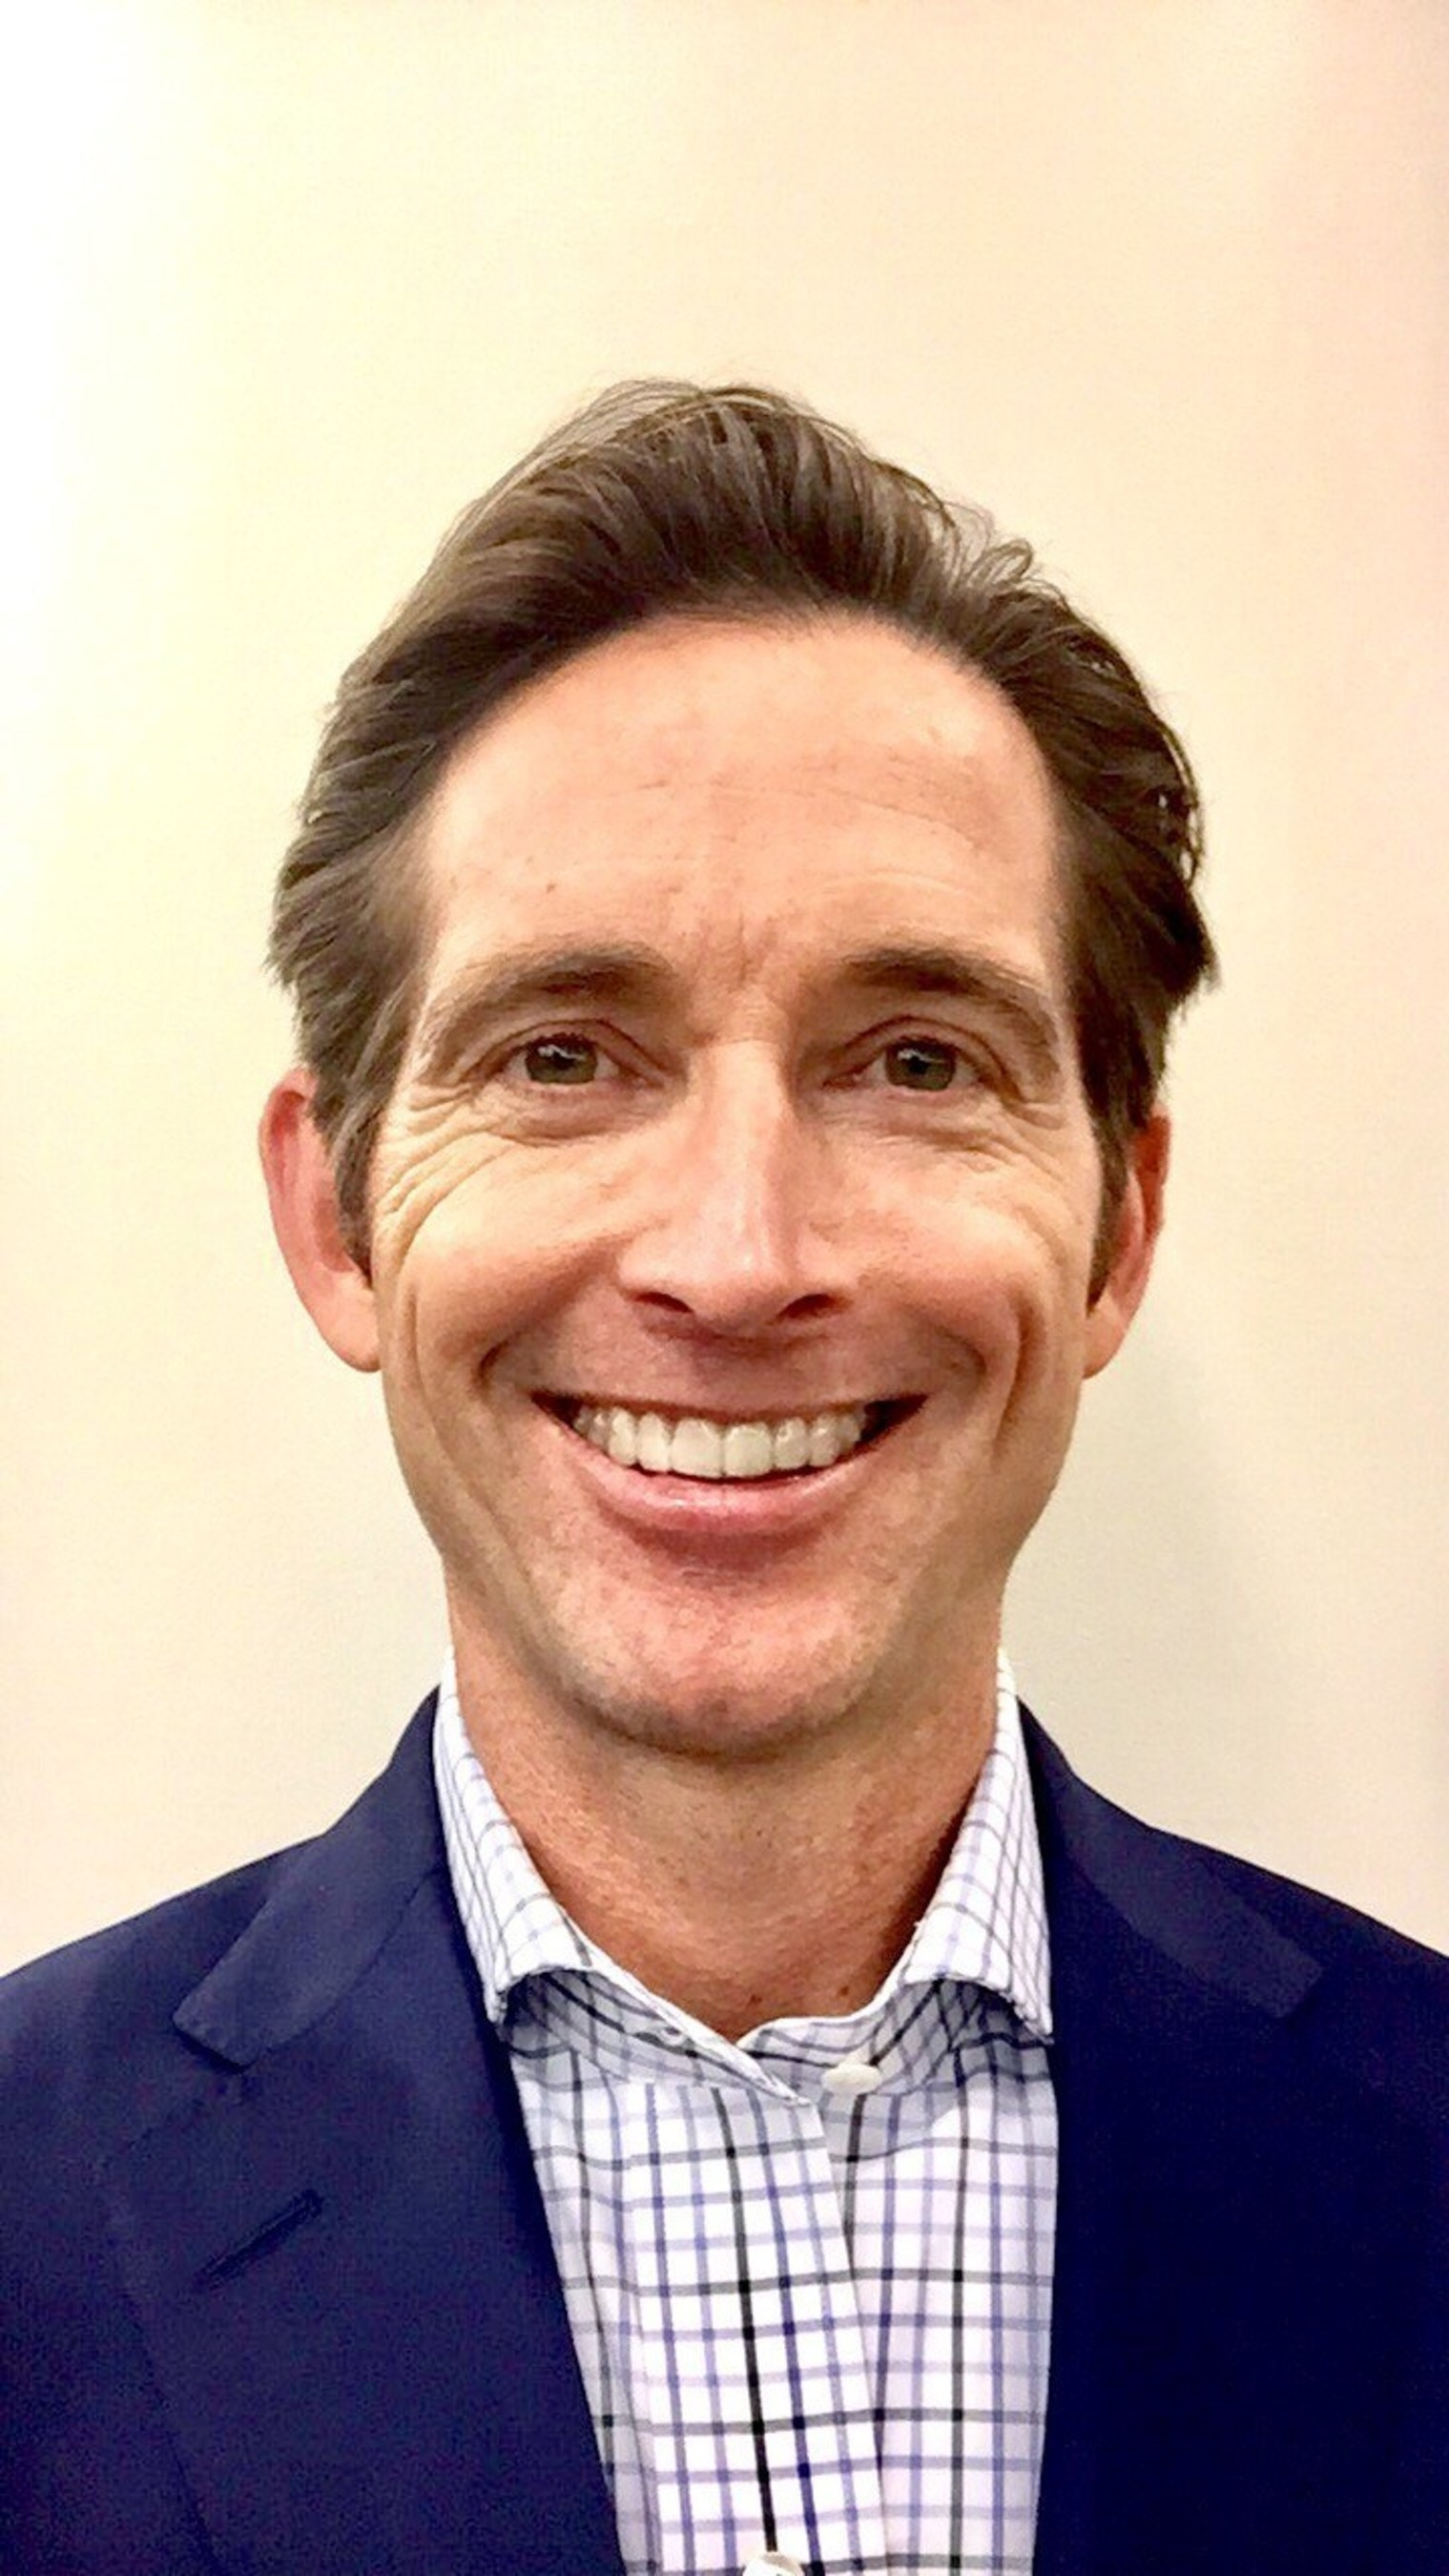 Veracyte has appointed Keith Kennedy as Chief Financial Officer